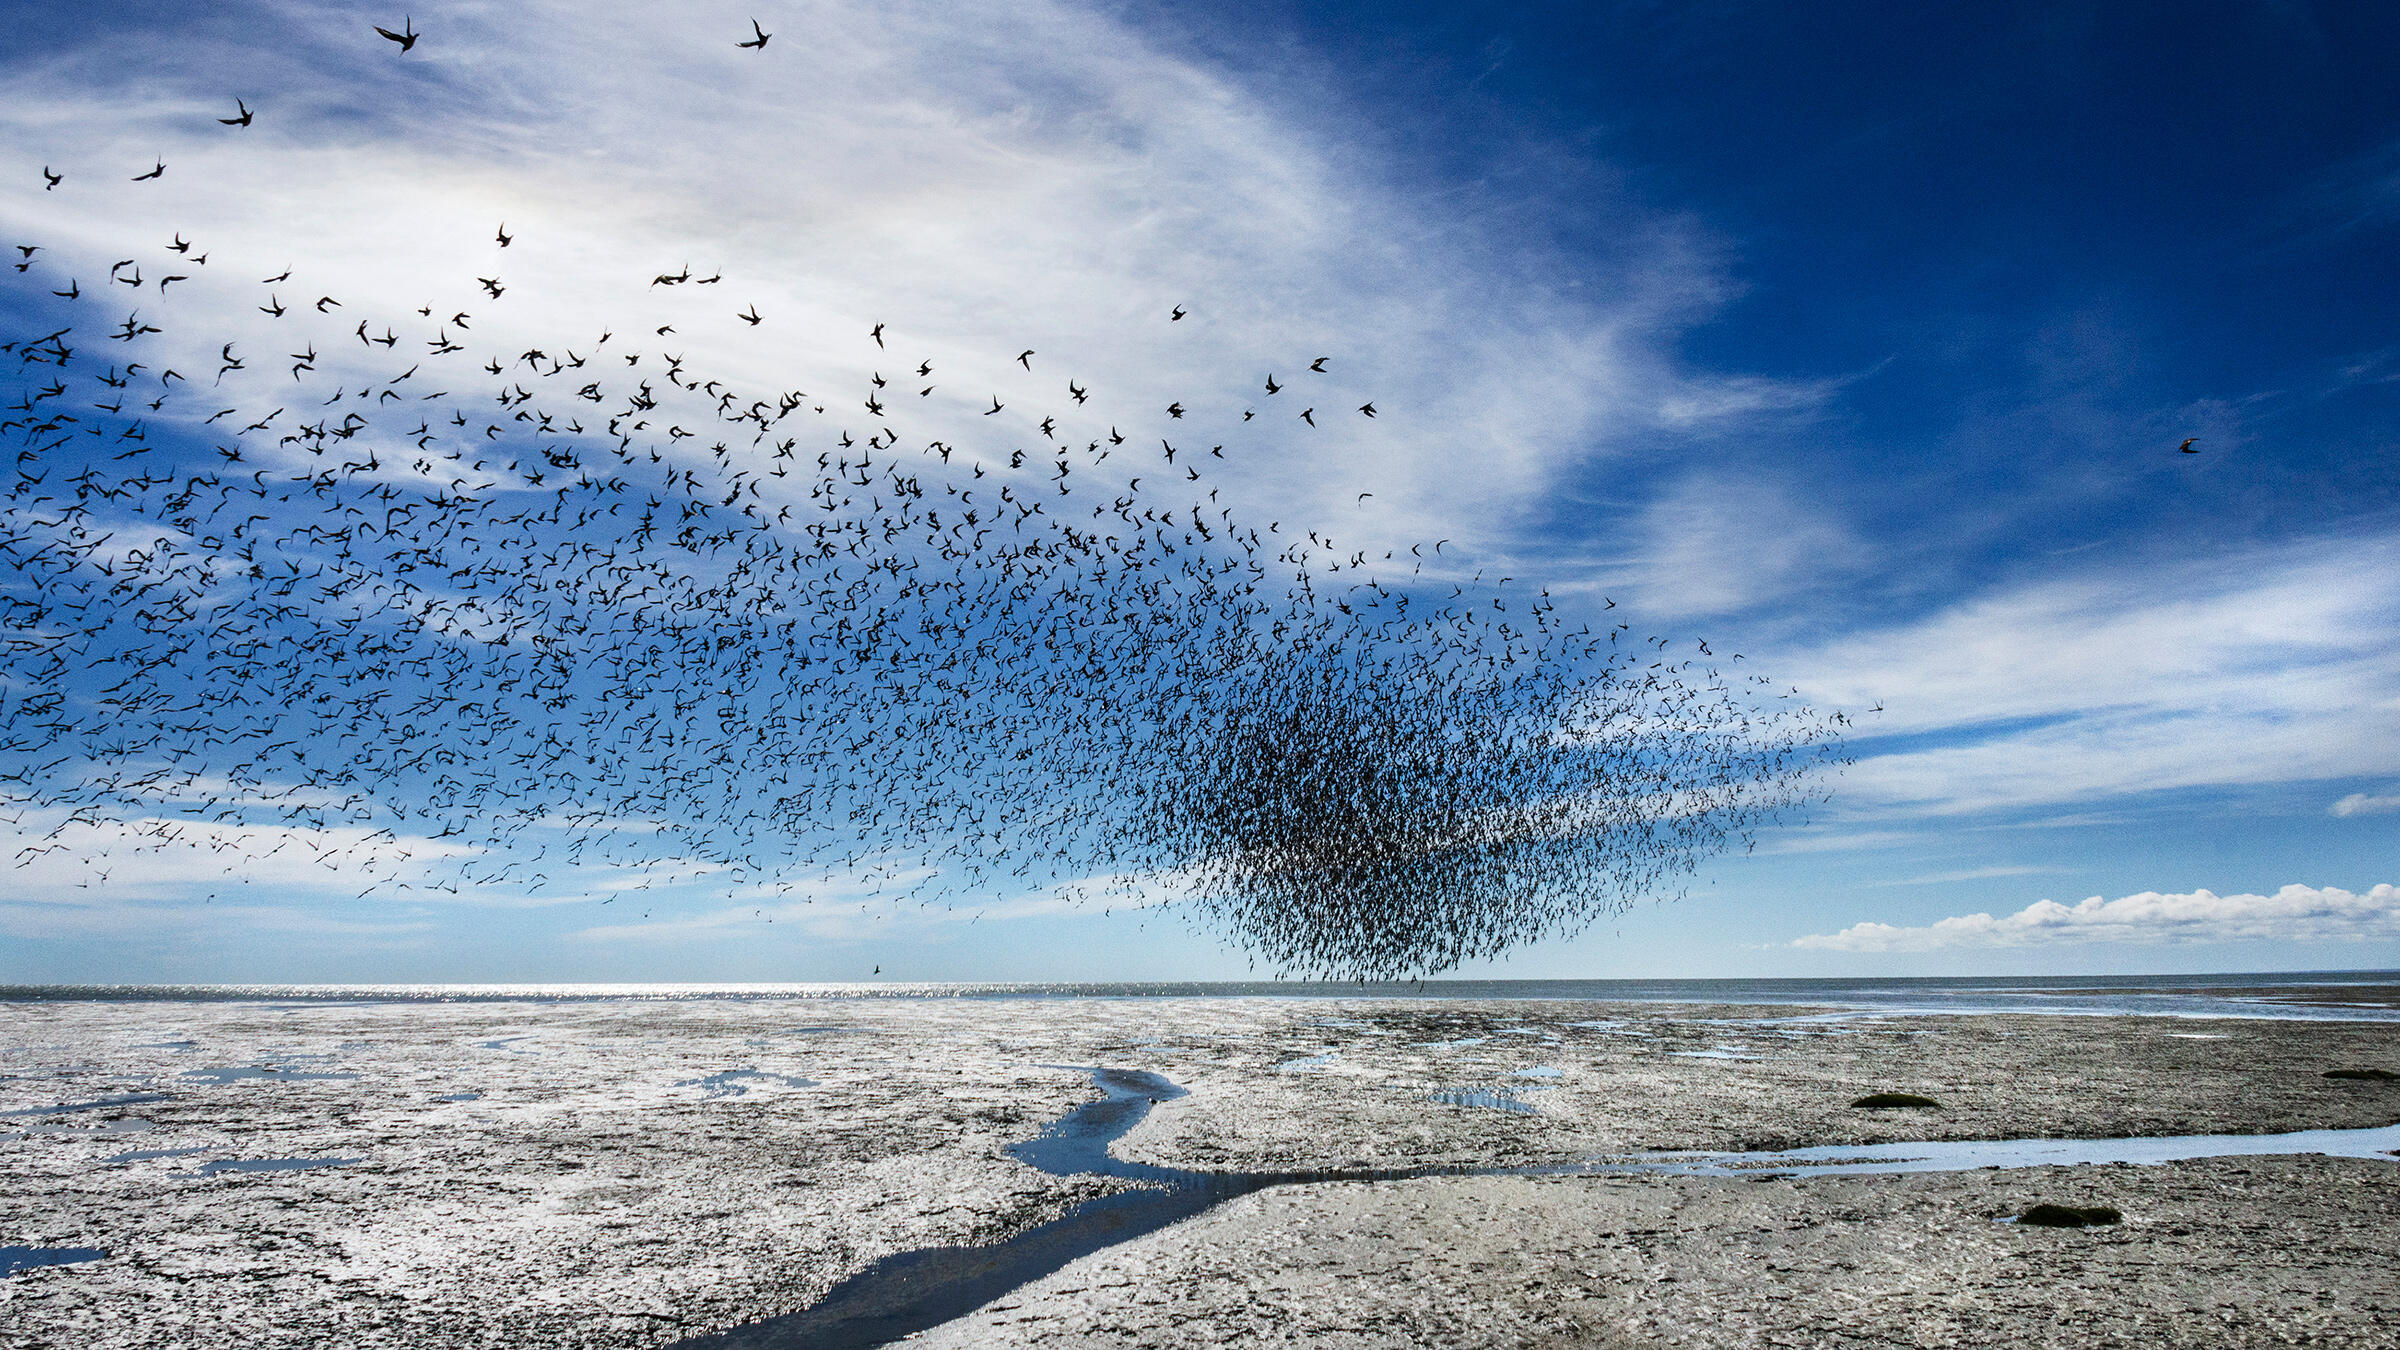 Red Knots and Hudsonian Godwits in Bahía Lomas, Tierra del Fuego. The knots, which flew some 9,000 miles to reach this spot, will winter here, then return to the Arctic to breed. Antonio Larrea